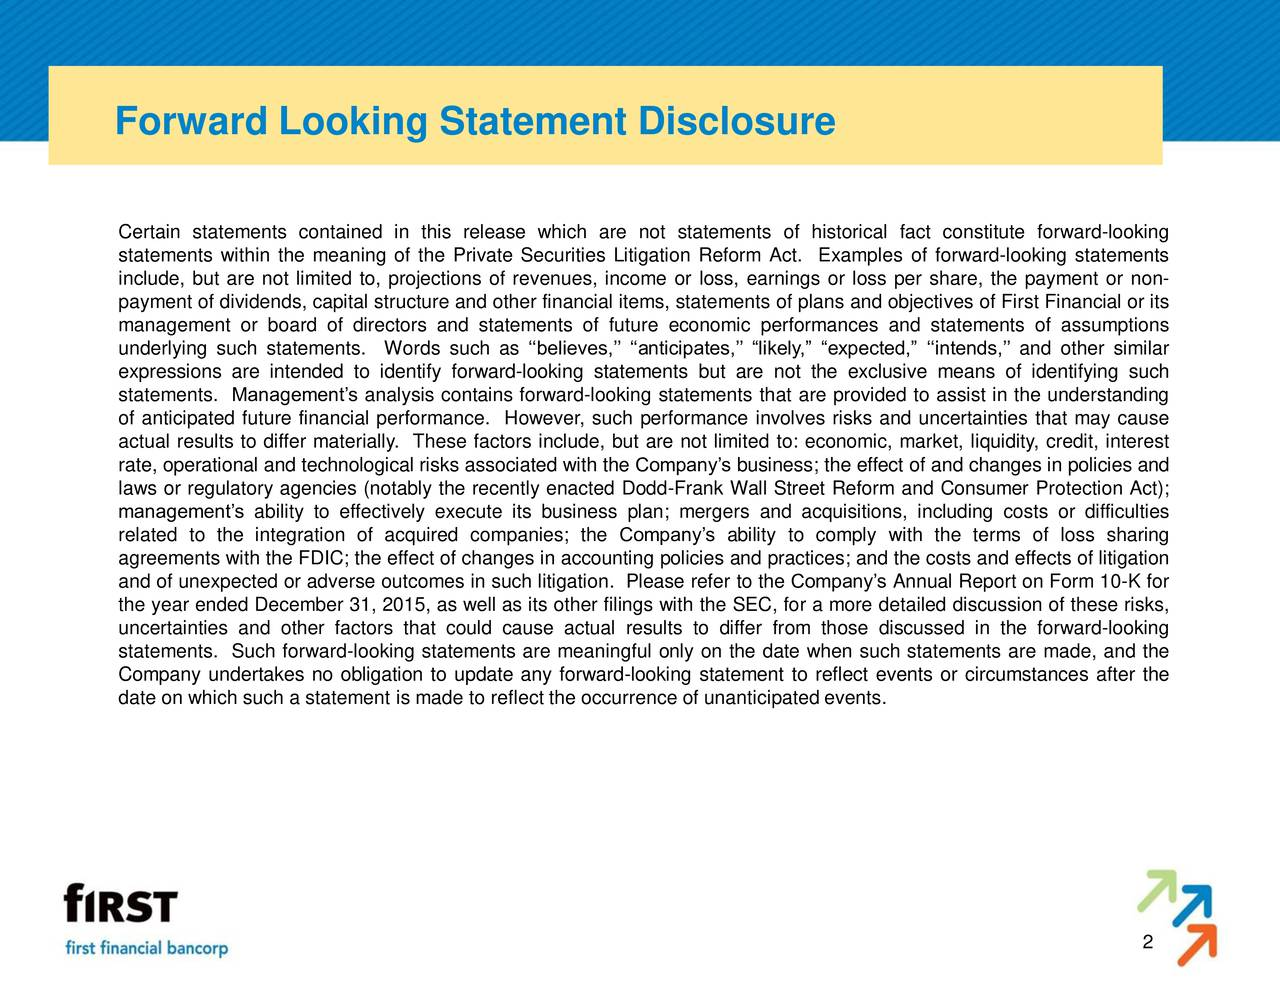 Certain statements contained in this release which are not statements of historical fact constitute forward-looking statements within the meaning of the Private Securities Litigation Reform Act. Examples of forward-looking statements include, but are not limited to, projections of revenues, income or loss, earnings or loss per share, the payment or non- payment of dividends, capital structure and other financial items, statements of plans and objectives of First Financial or its management or board of directors and statements of future economic performances and statements of assumptions underlying such statements. Words such as believes, anticipates, likely, expected, intends, and other similar expressions are intended to identify forward-looking statements but are not the exclusive means of identifying such statements. Managements analysis contains forward-looking statements that are provided to assist in the understanding of anticipated future financial performance. However, such performance involves risks and uncertainties that may cause actual results to differ materially. These factors include, but are not limited to: economic, market, liquidity, credit, interest rate, operational and technological risks associated with the Companys business; the effect of and changes in policies and laws or regulatory agencies (notably the recently enacted Dodd-Frank Wall Street Reform and Consumer Protection Act); managements ability to effectively execute its business plan; mergers and acquisitions, including costs or difficulties related to the integration of acquired companies; the Companys ability to comply with the terms of loss sharing agreements with the FDIC; the effect of changes in accounting policies and practices; and the costs and effects of litigation and of unexpected or adverse outcomes in such litigation. Please refer to the Companys Annual Report on Form 10-K for the year ended December 31, 2015, as well as its other filings with the SEC, for a more detailed discussion of these risks, uncertainties and other factors that could cause actual results to differ from those discussed in the forward-looking statements. Such forward-looking statements are meaningful only on the date when such statements are made, and the Company undertakes no obligation to update any forward-looking statement to reflect events or circumstances after the date on which such a statement is made to reflect the occurrence of unanticipated events. 2